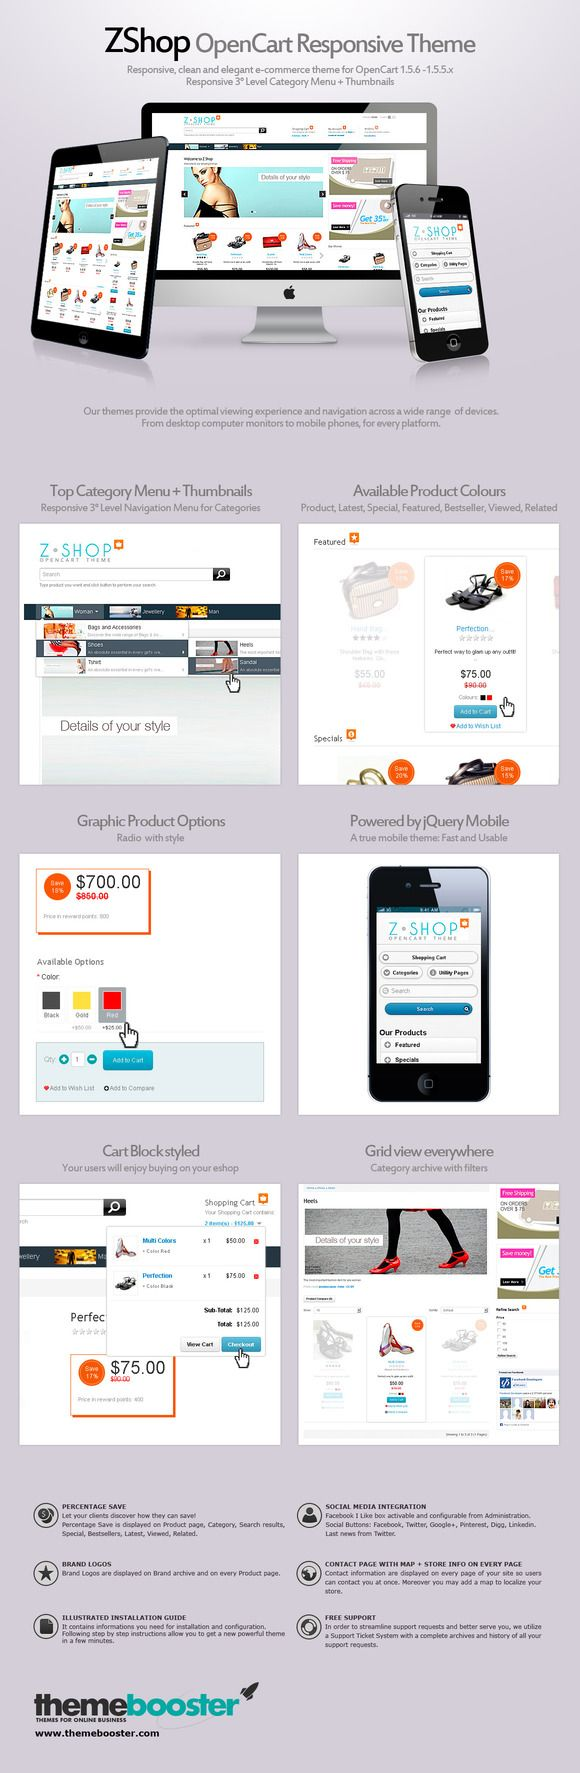 ZShop Responsive theme for OpenCart by ThemeBooster.com on Creative Market